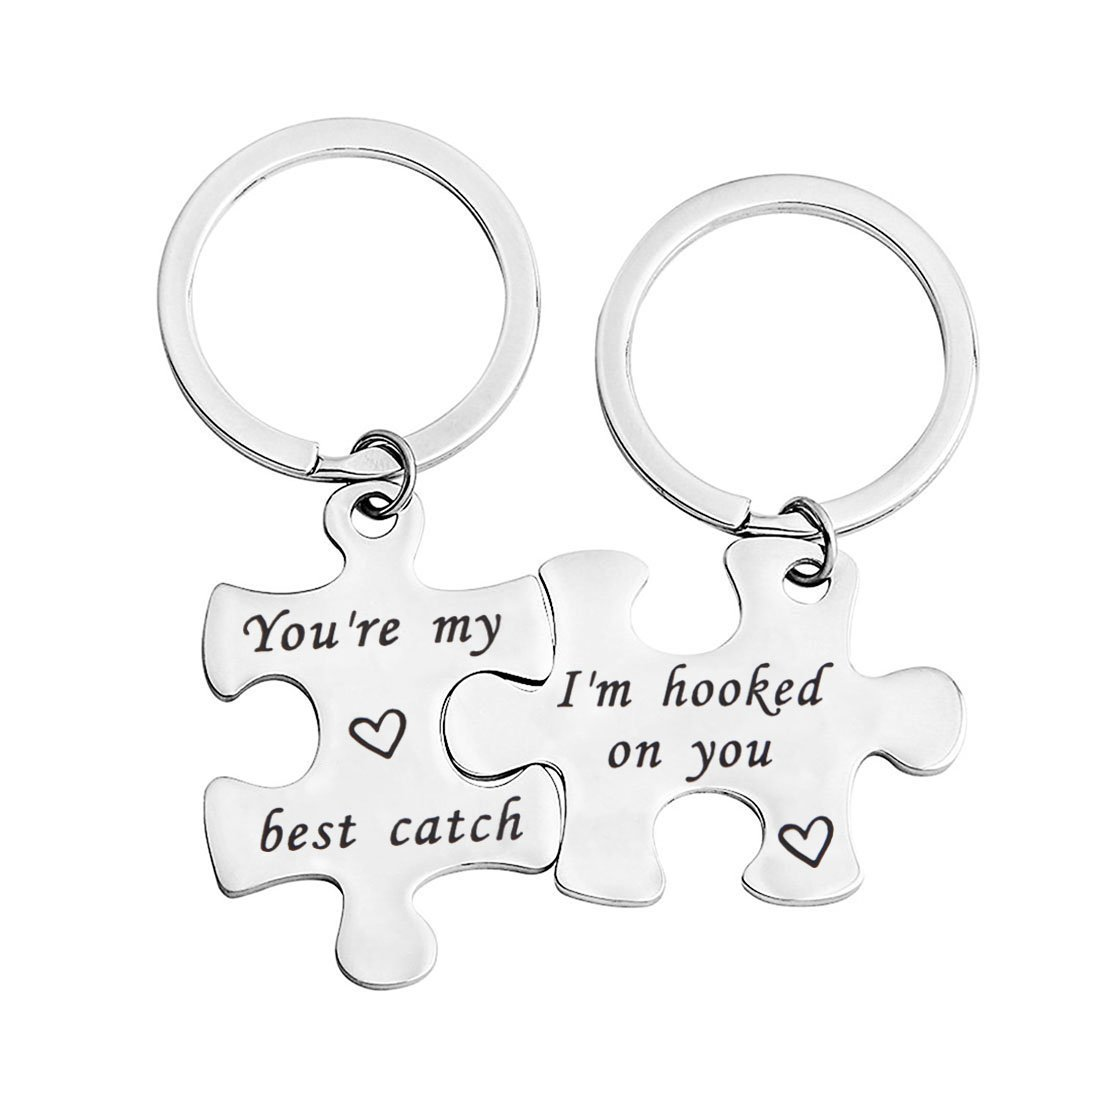 bobauna His And Hers Puzzle Piece Keychain Set of 2 Hooked On You My Best Catch Anniversary Gift For Couples Boyfriend Girlfriend (hook catch set)